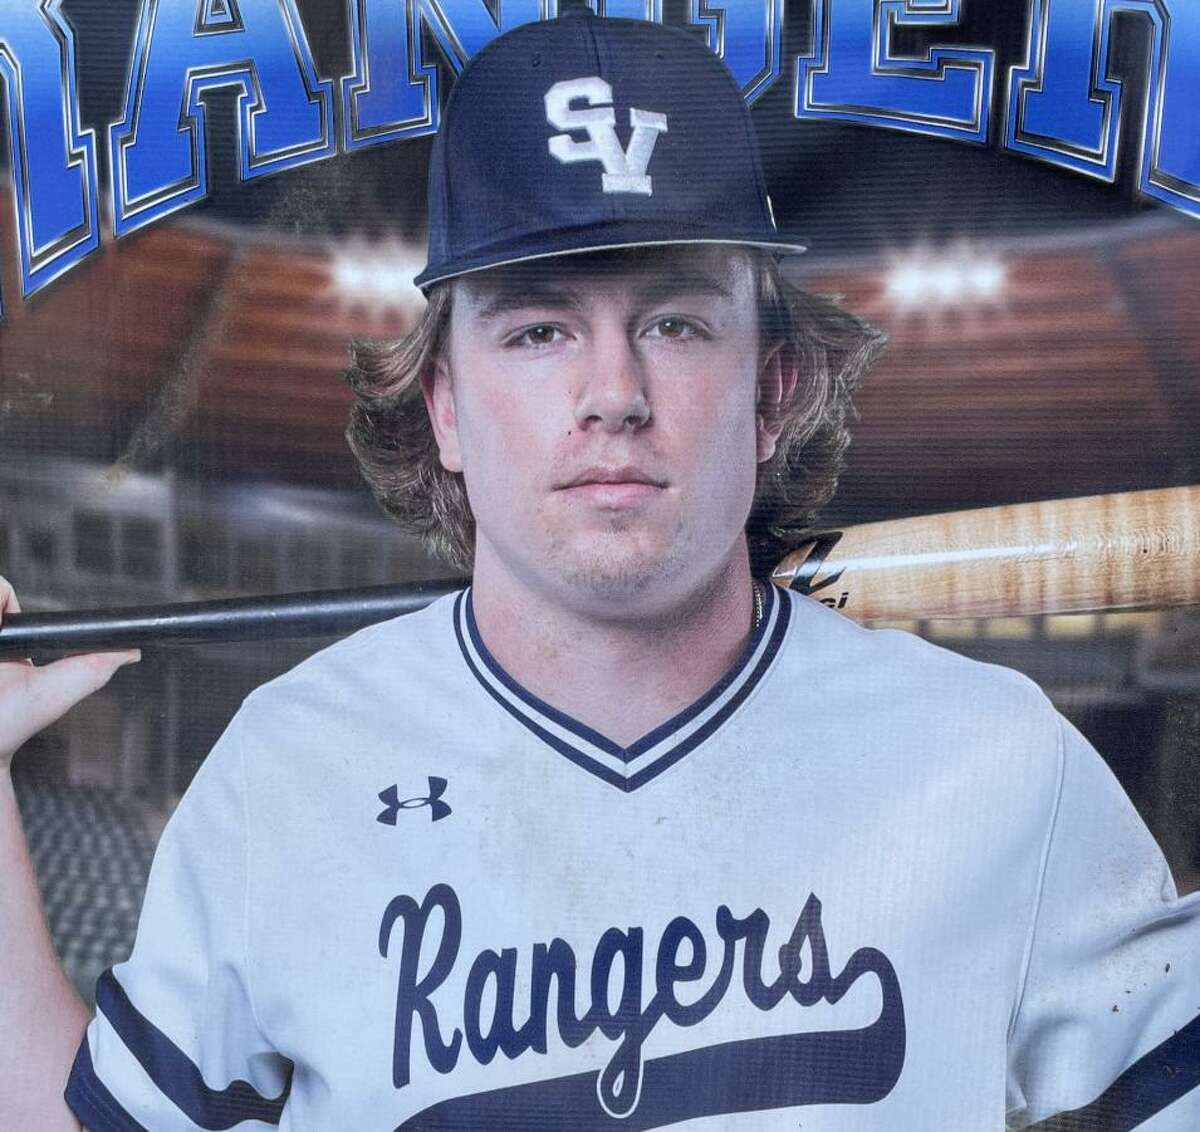 Garrett Brooks Went 2 for 3 with two home runs and three RBIs and a stolen base in the Rangers' 9-5 victory over Steele